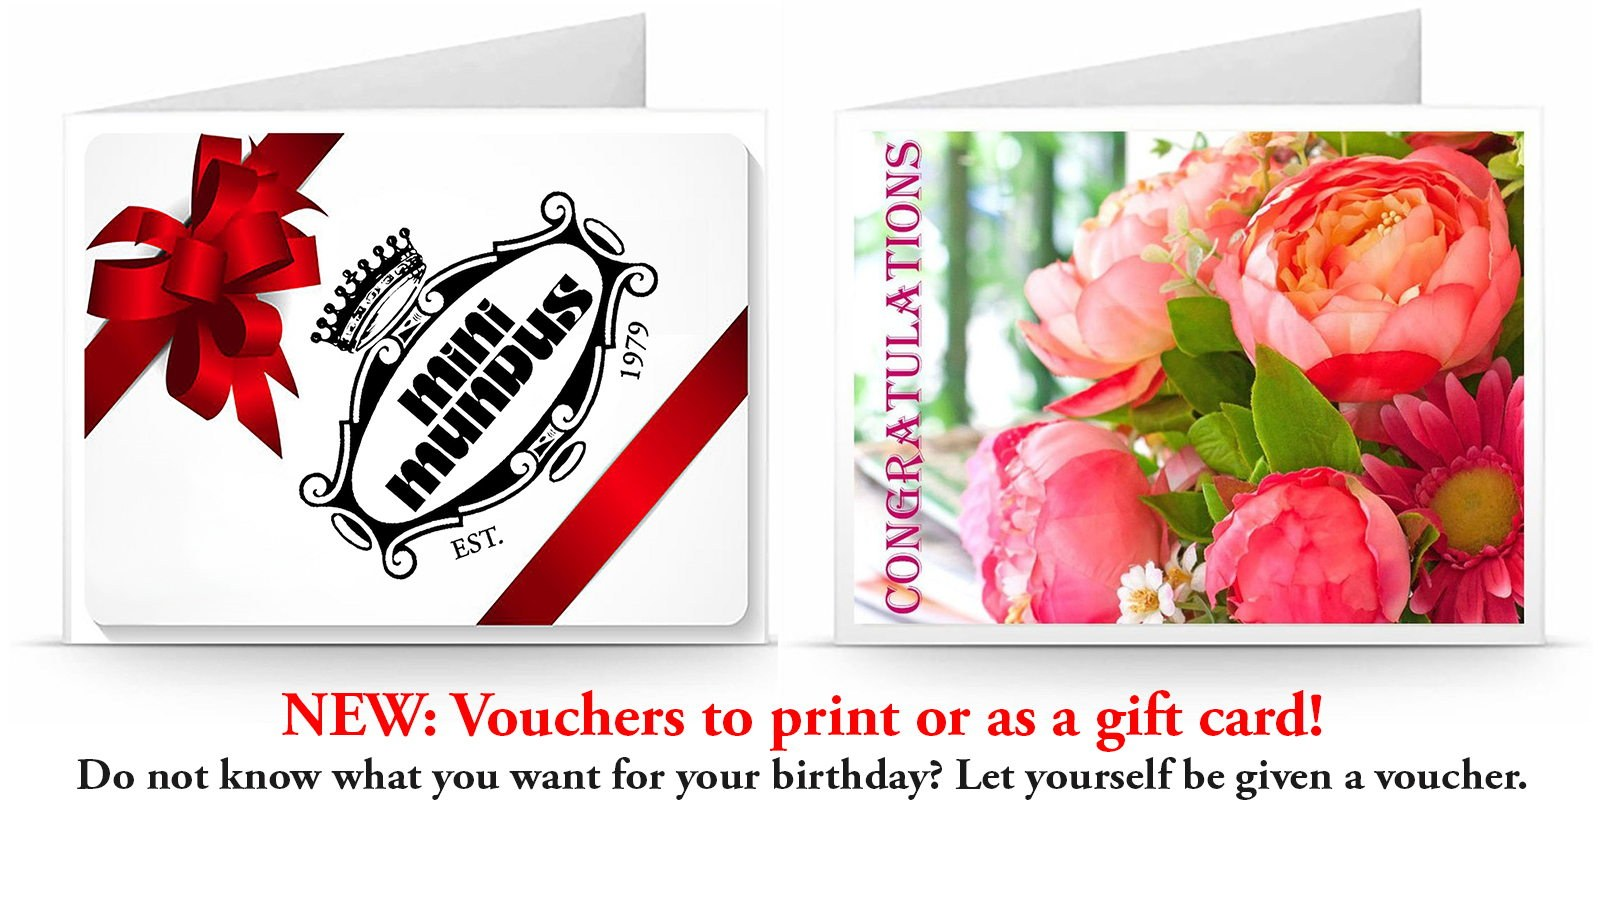 Giving presents made easy: The Mini Mundus voucher worth 15 - 250 euros